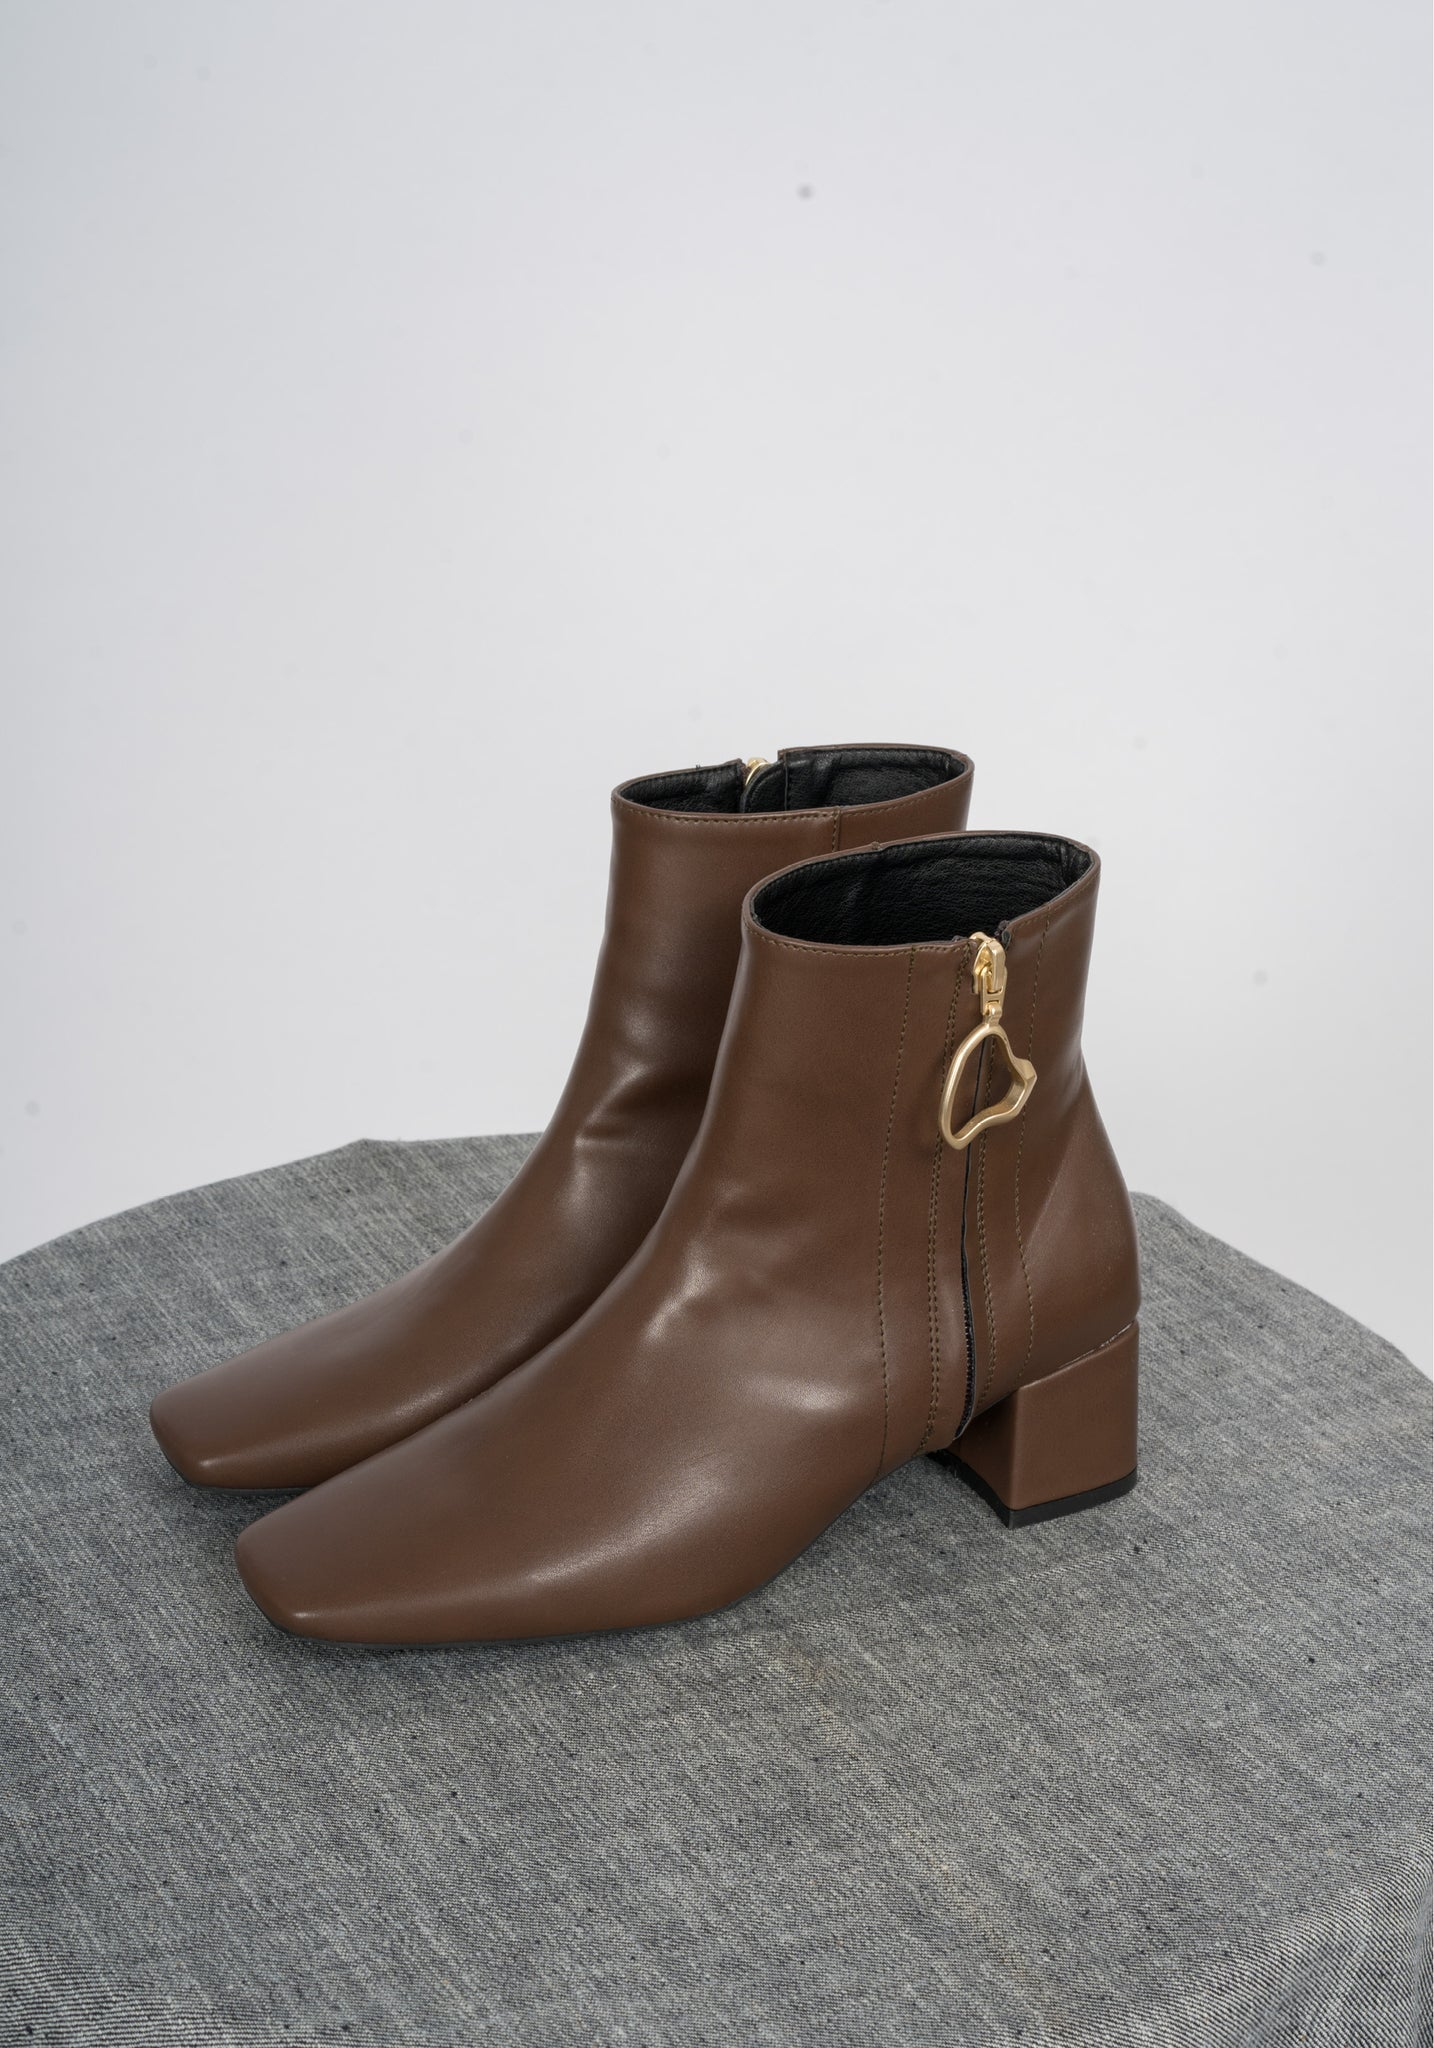 Sample Shoes - Chaney Buckle Boots